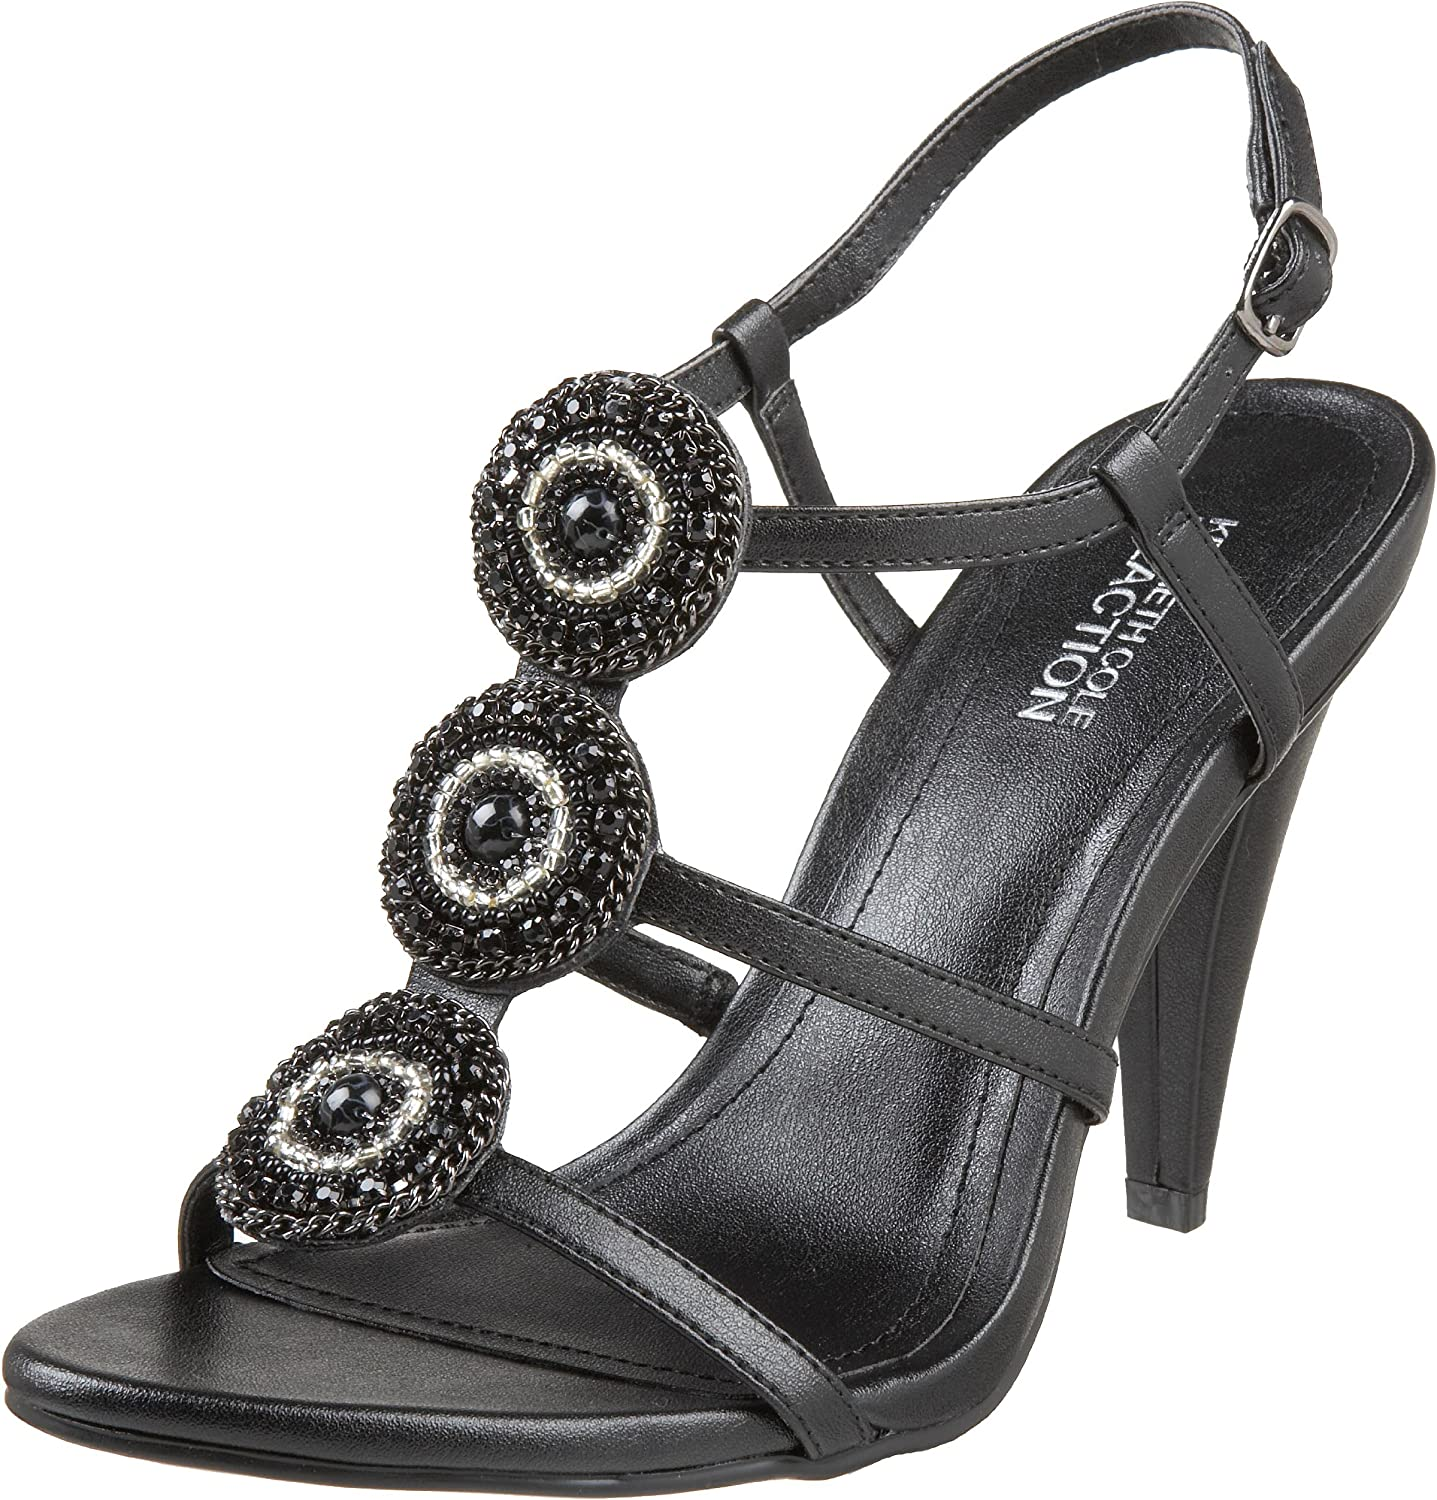 Now free shipping Online limited product Kenneth Cole REACTION Women's Know Sandal Place